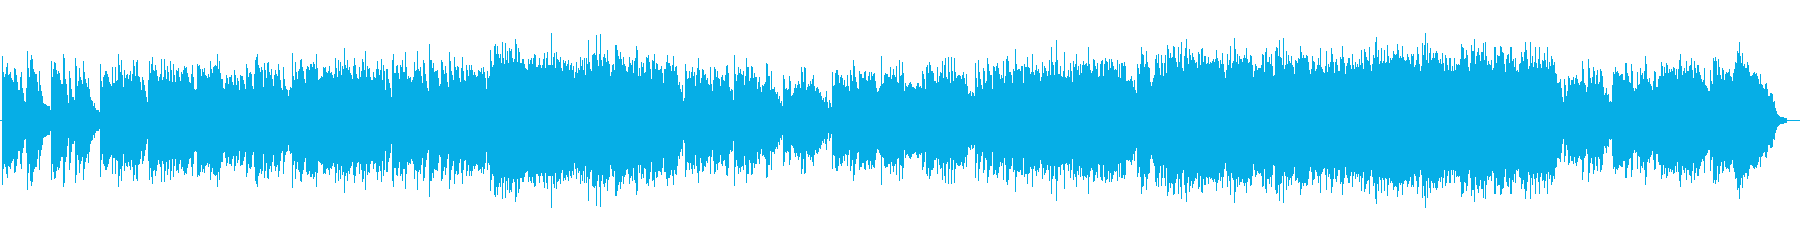 Bright and refreshing violin song's reproduced waveform